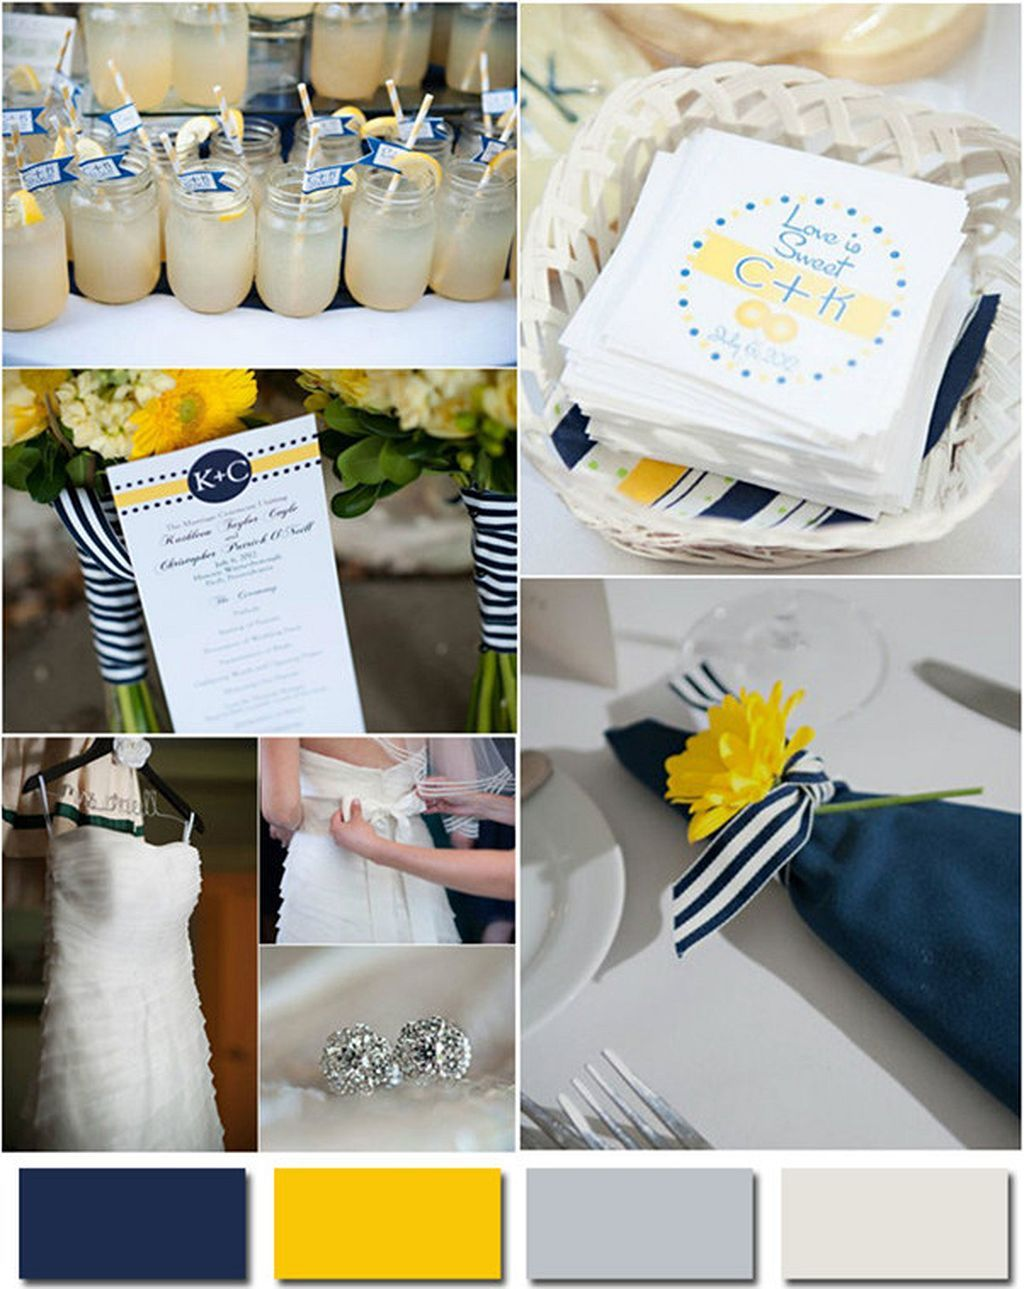 Wedding decorations yellow and gray   Navy Blue Wedding Theme Ideas  Blue wedding themes Theme ideas